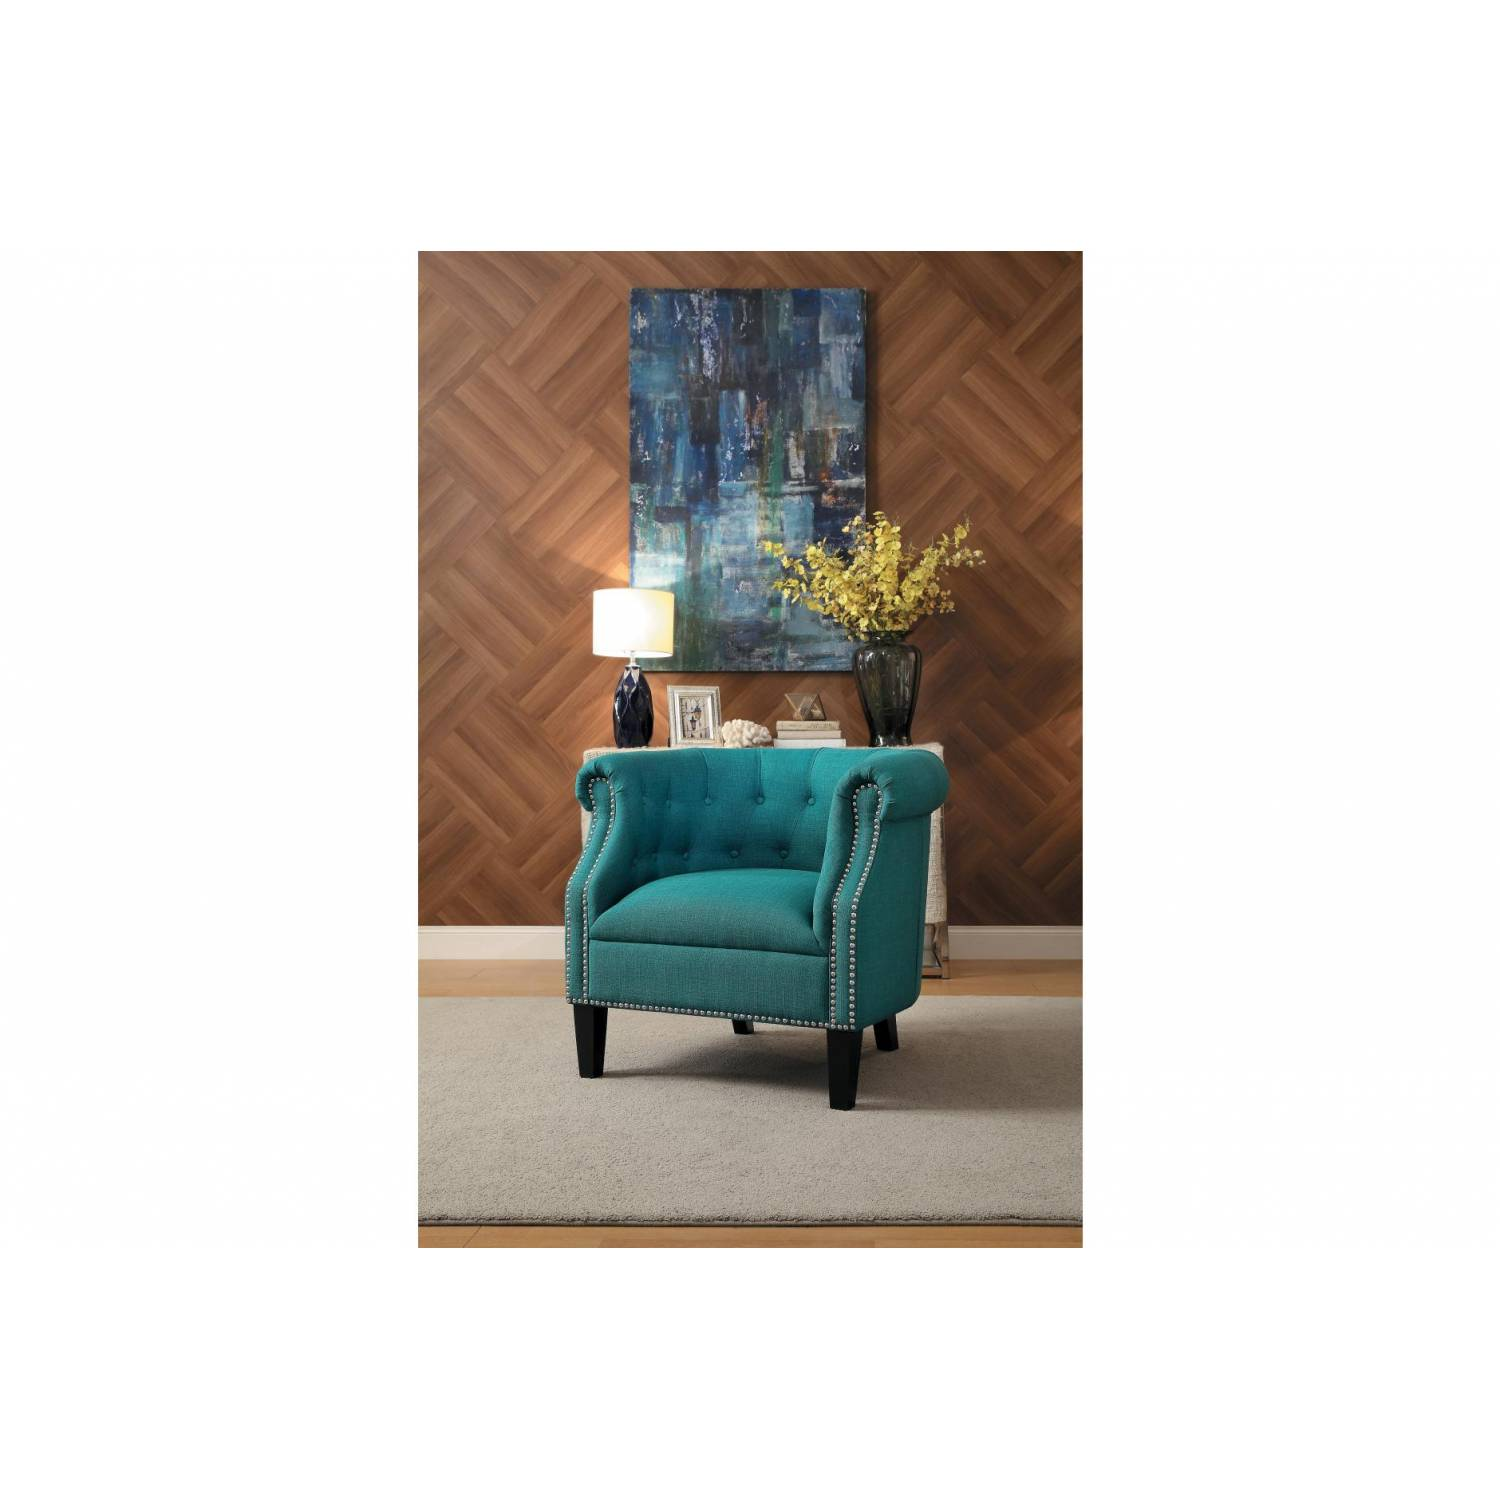 1220f3s Karlock Accent Chair Teal